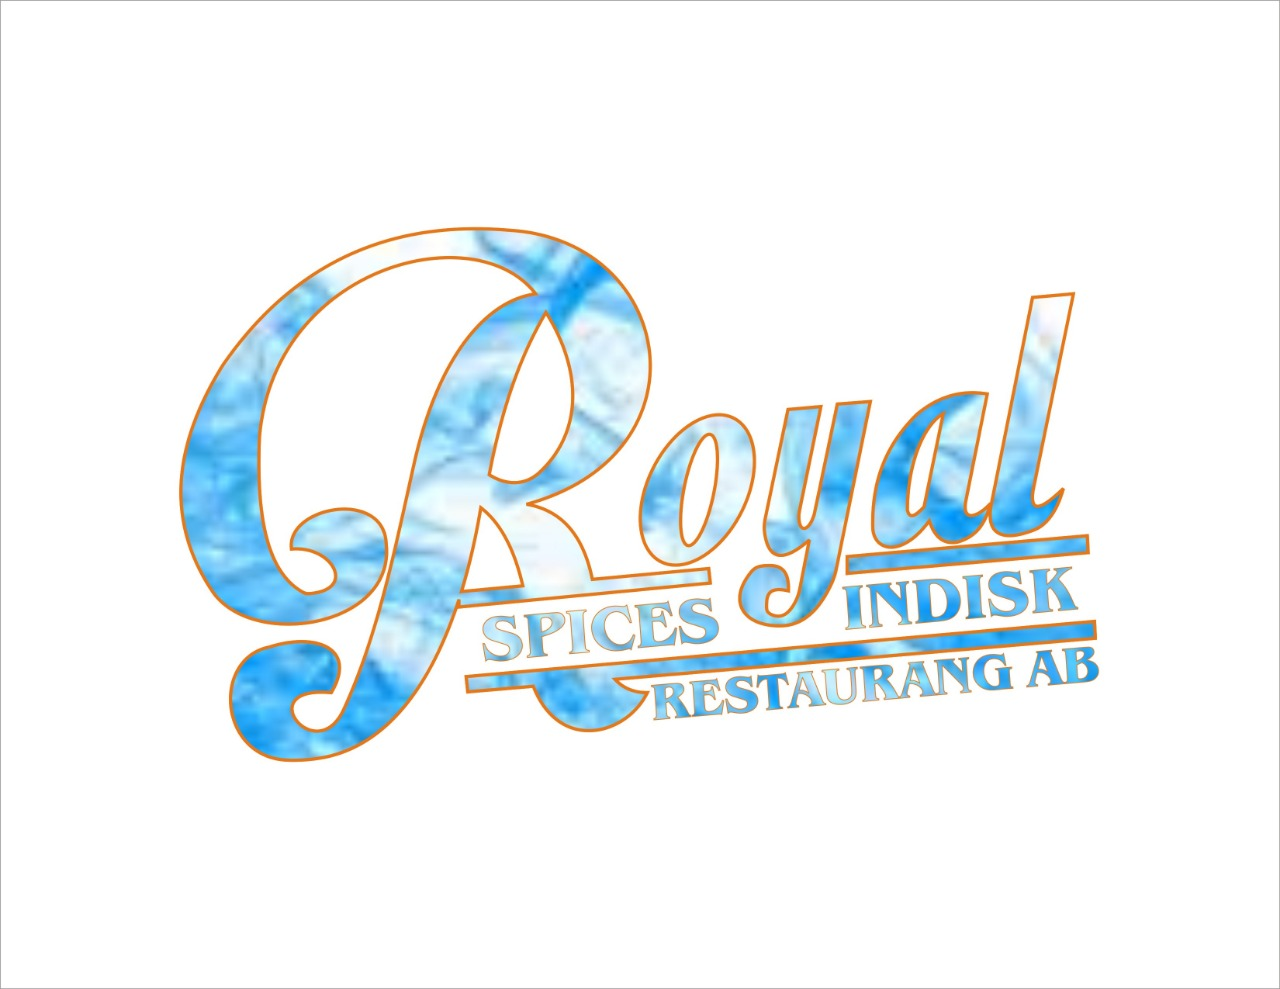 Royal Spices Indisk Restaurang AB